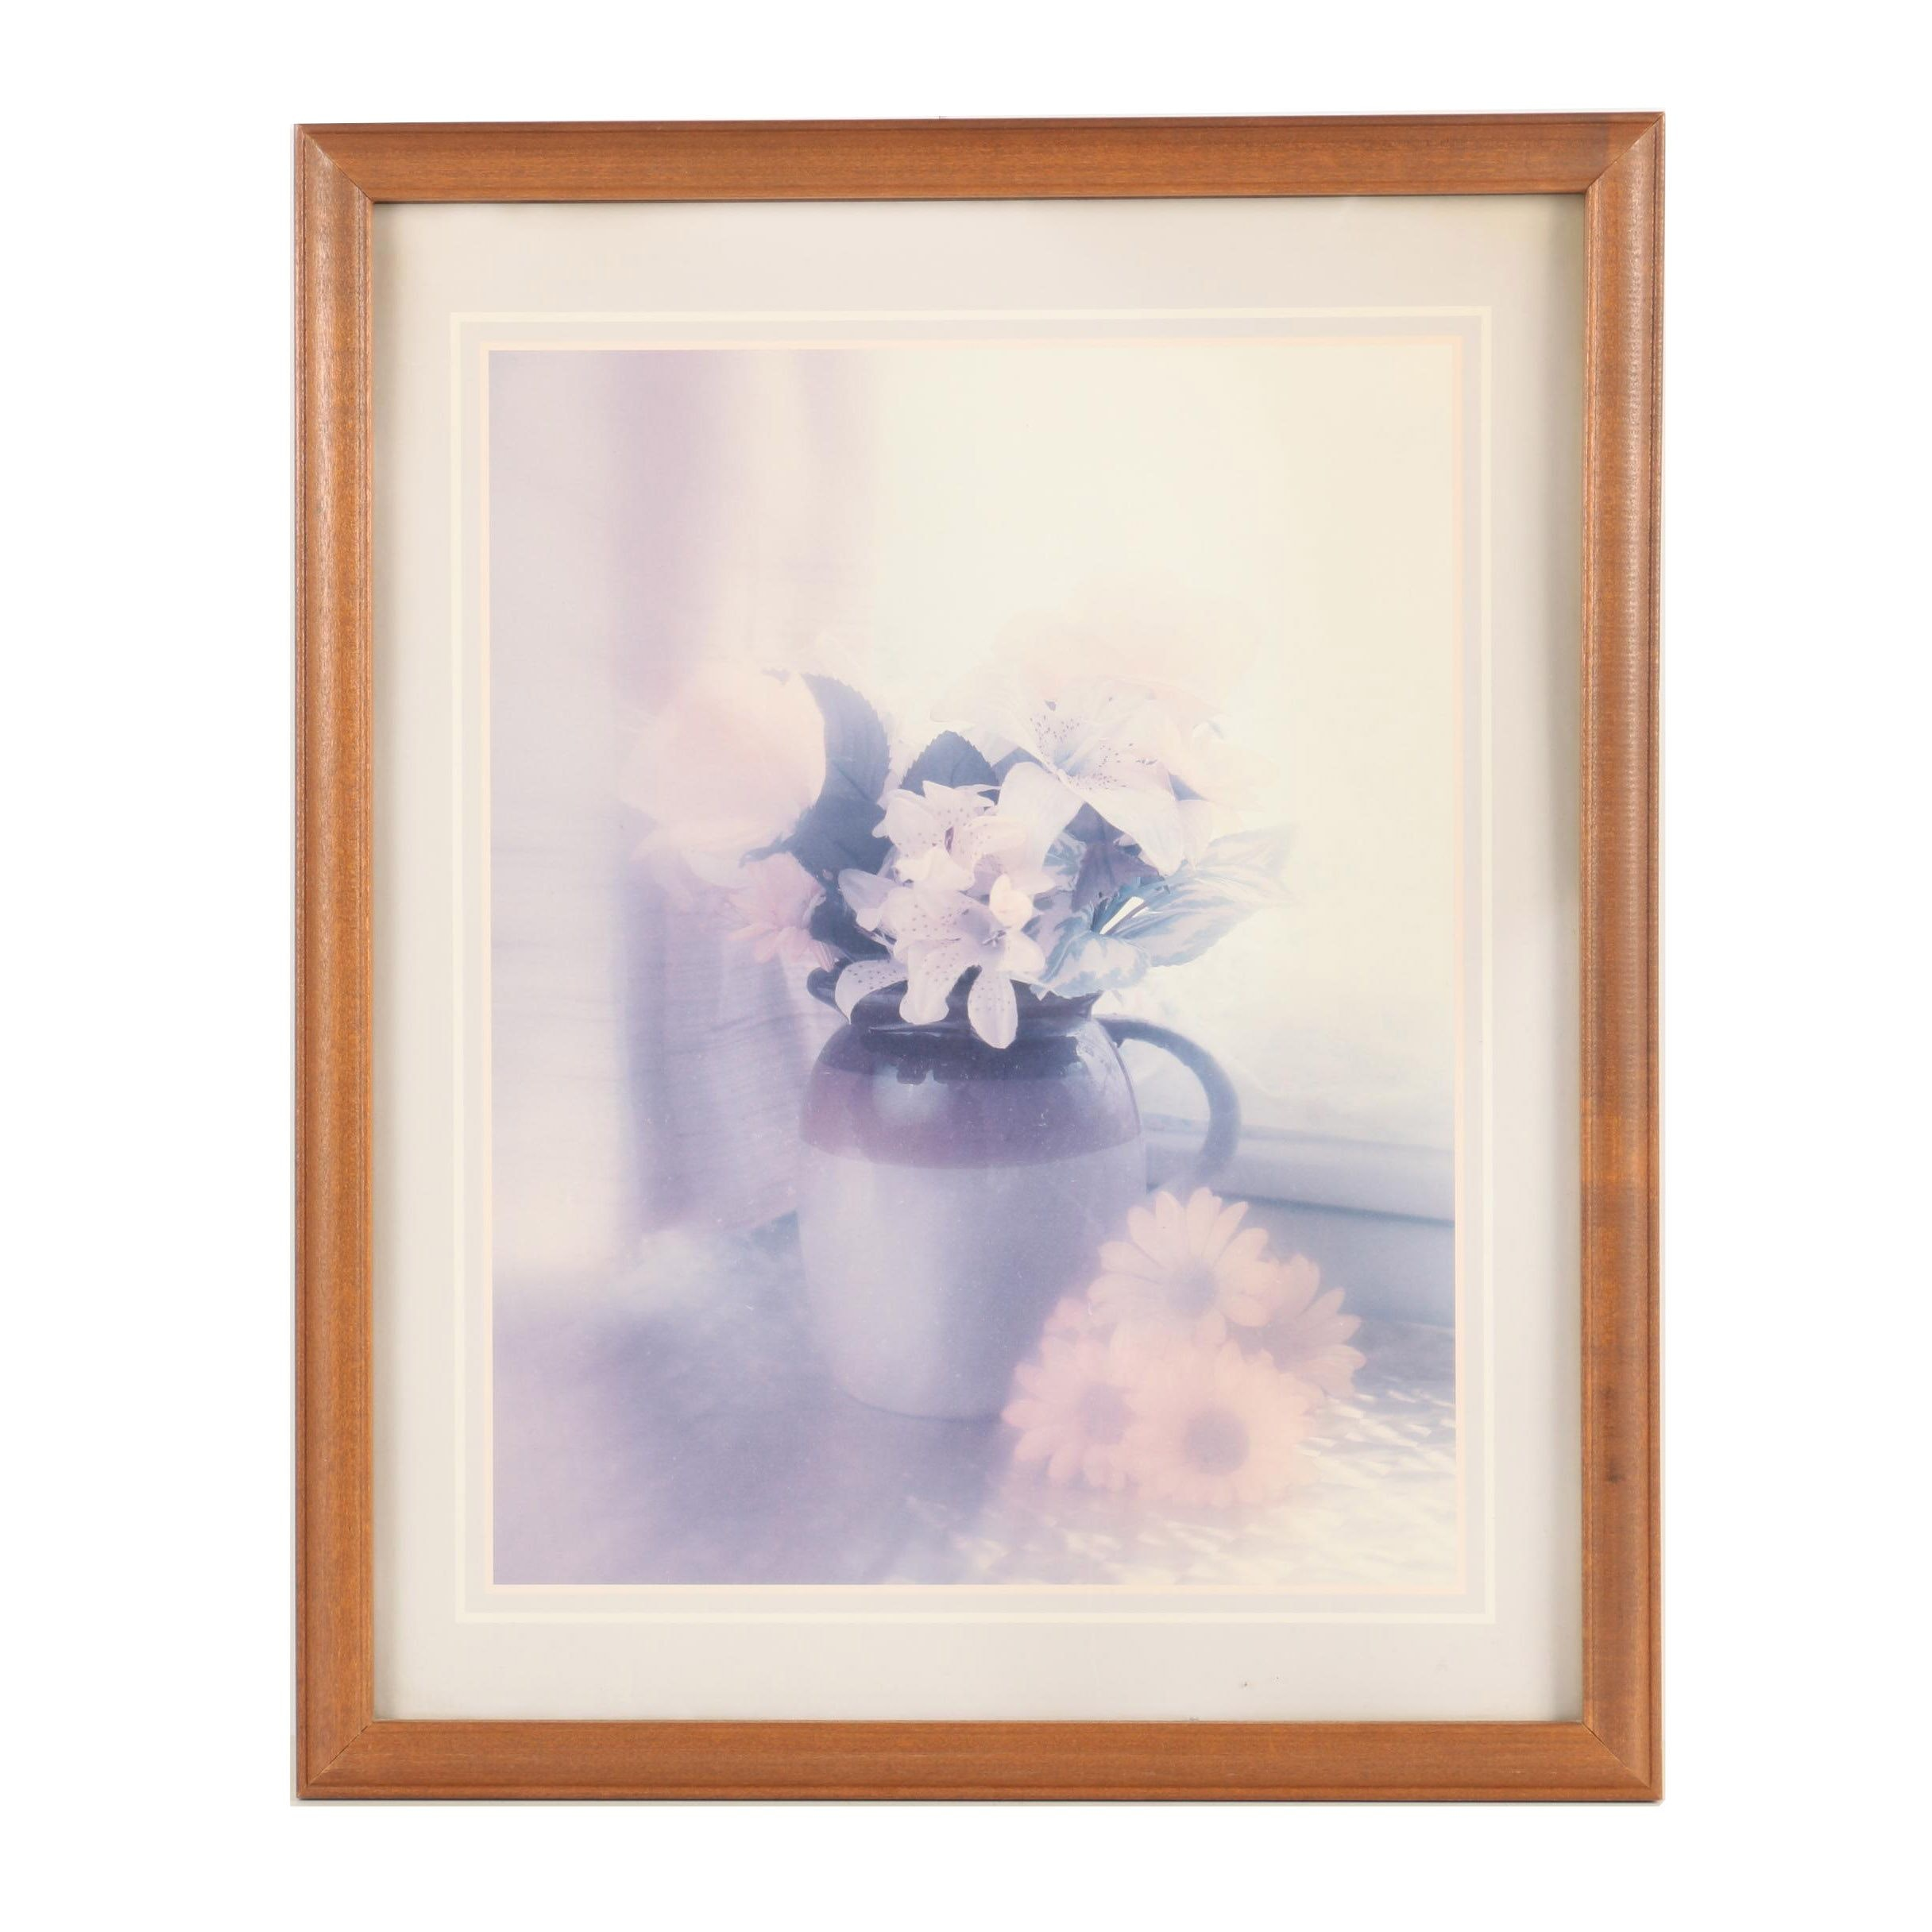 Offset Lithograph Print on Paper After Photograph of Floral Still Life